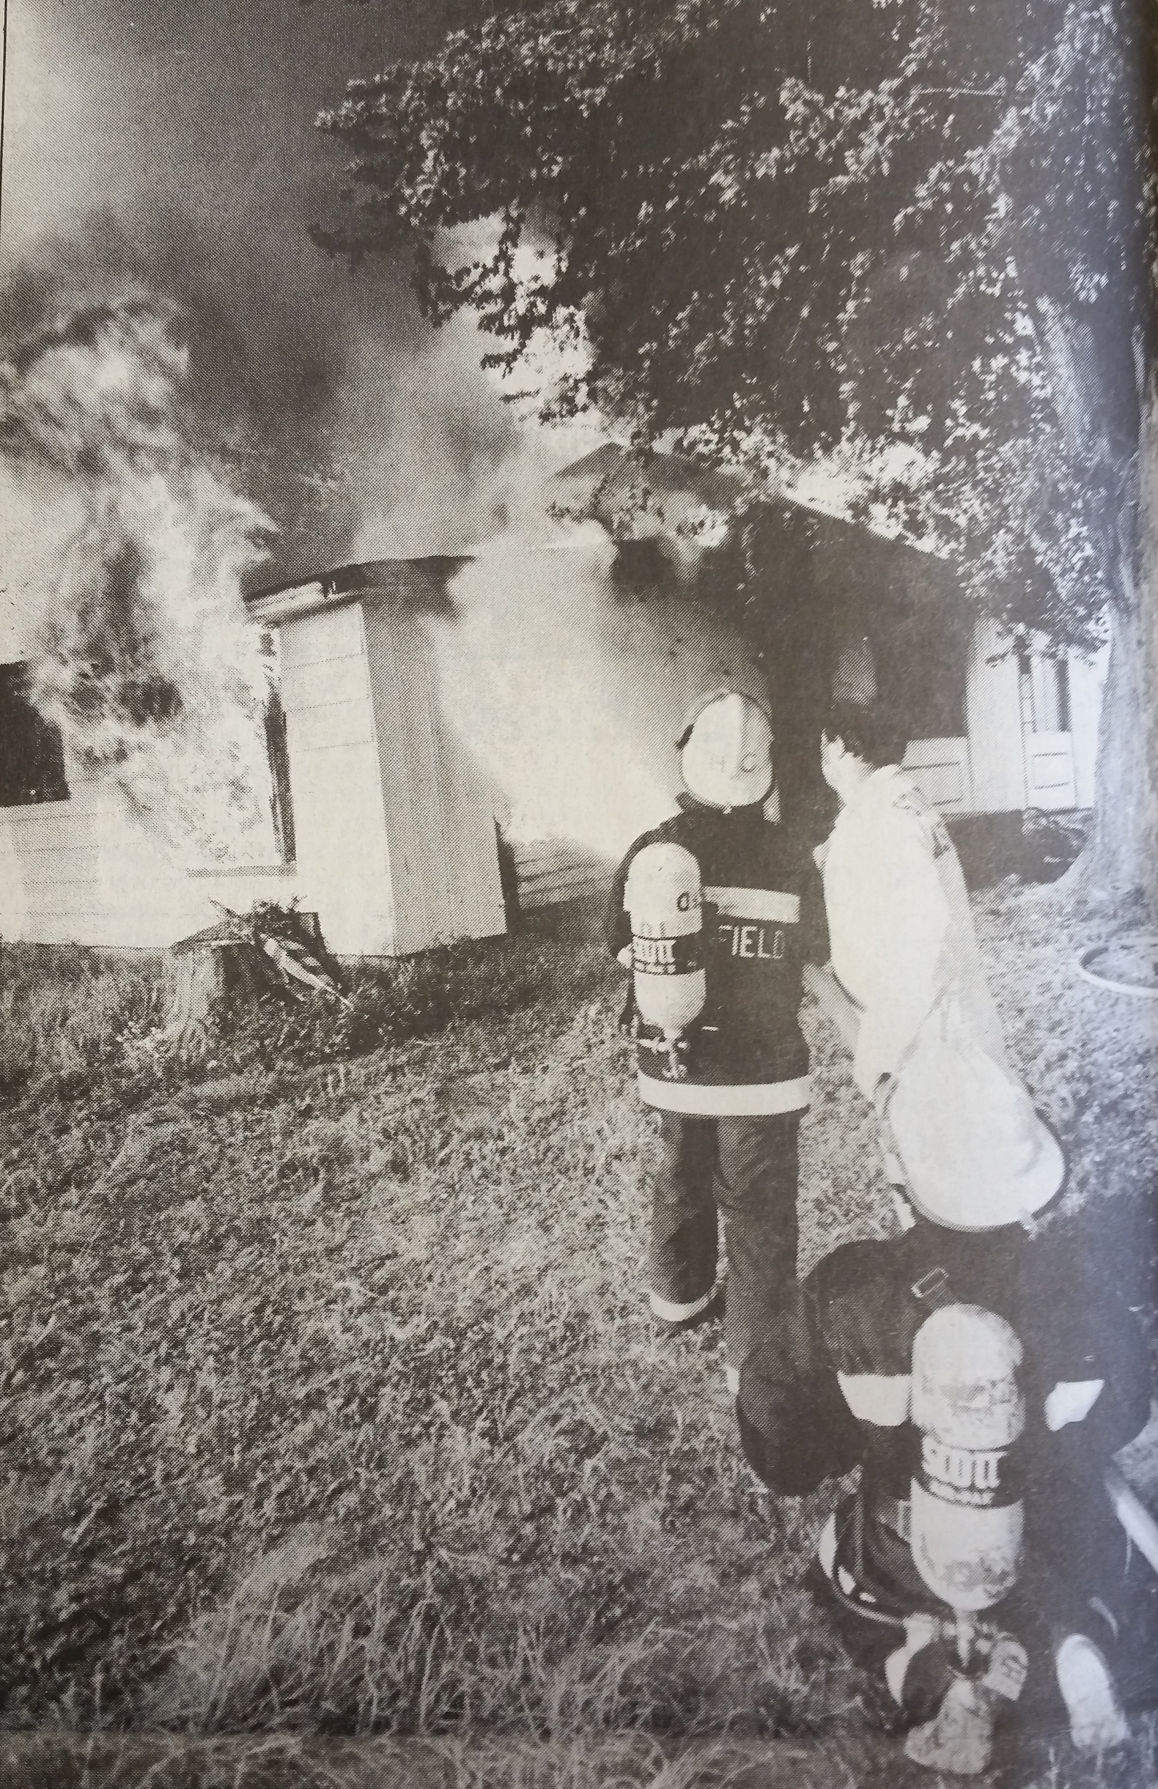 Firefighters learn by intentionally burning a home